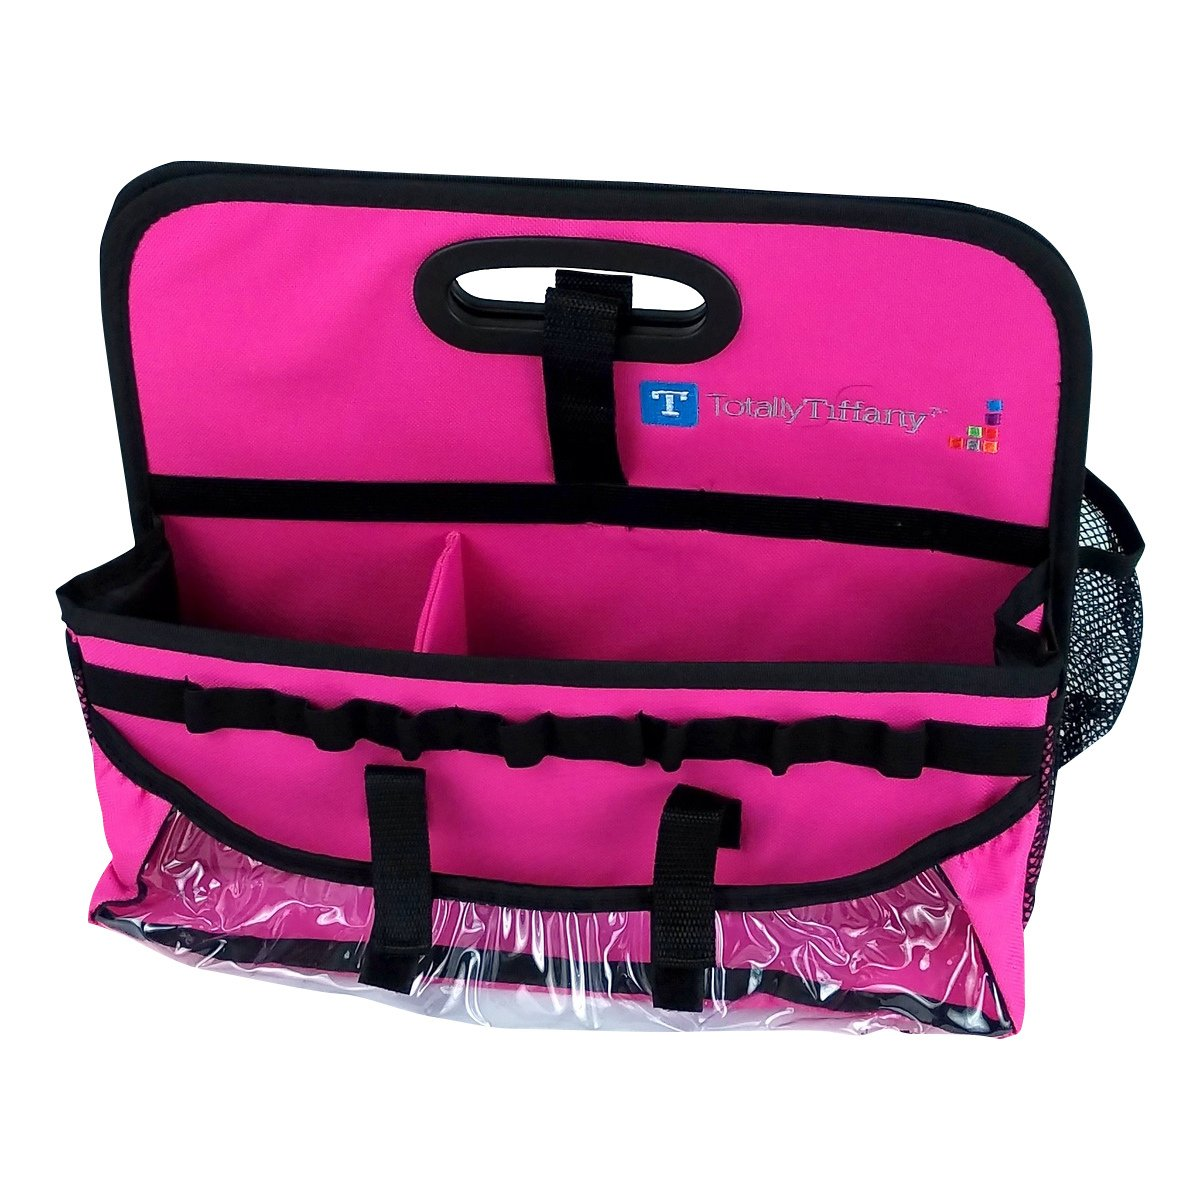 Totally-Tiffany Ditto Tool Organizer-PINK